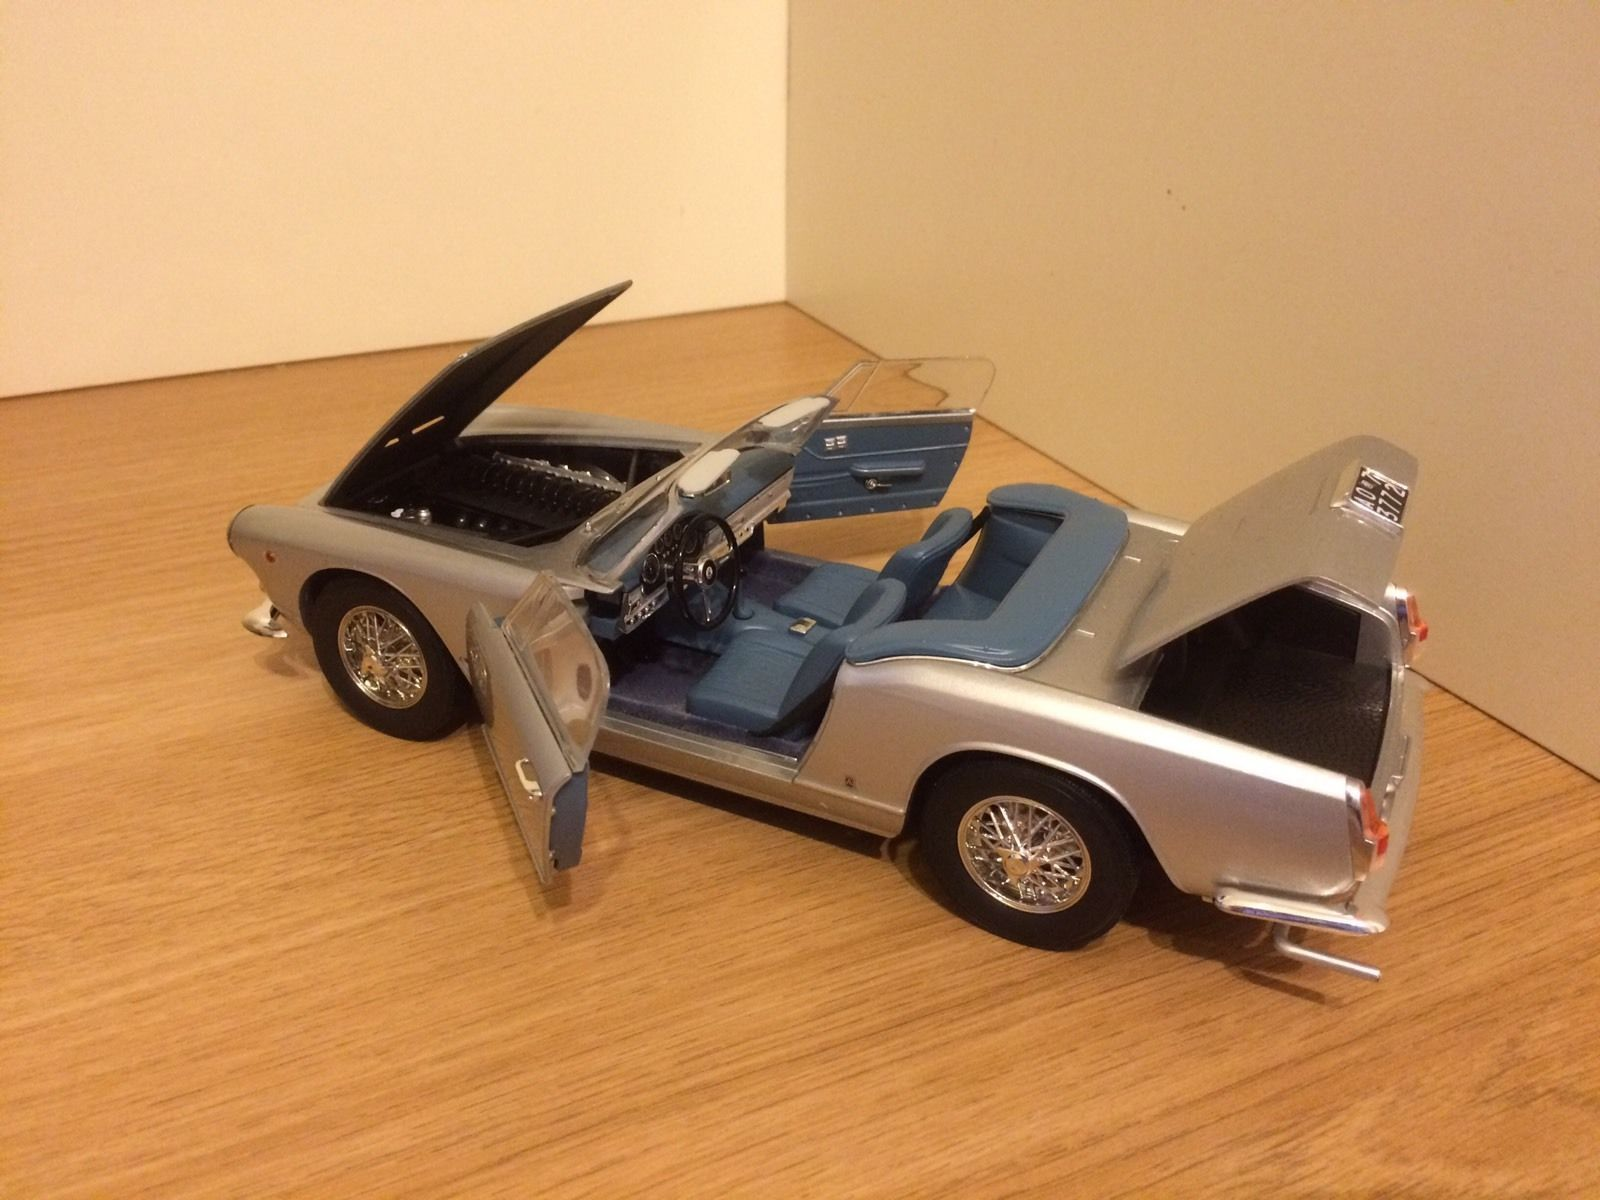 details about 118 maserati 3500gt vignale in silver by ricko rare diecast model car lot